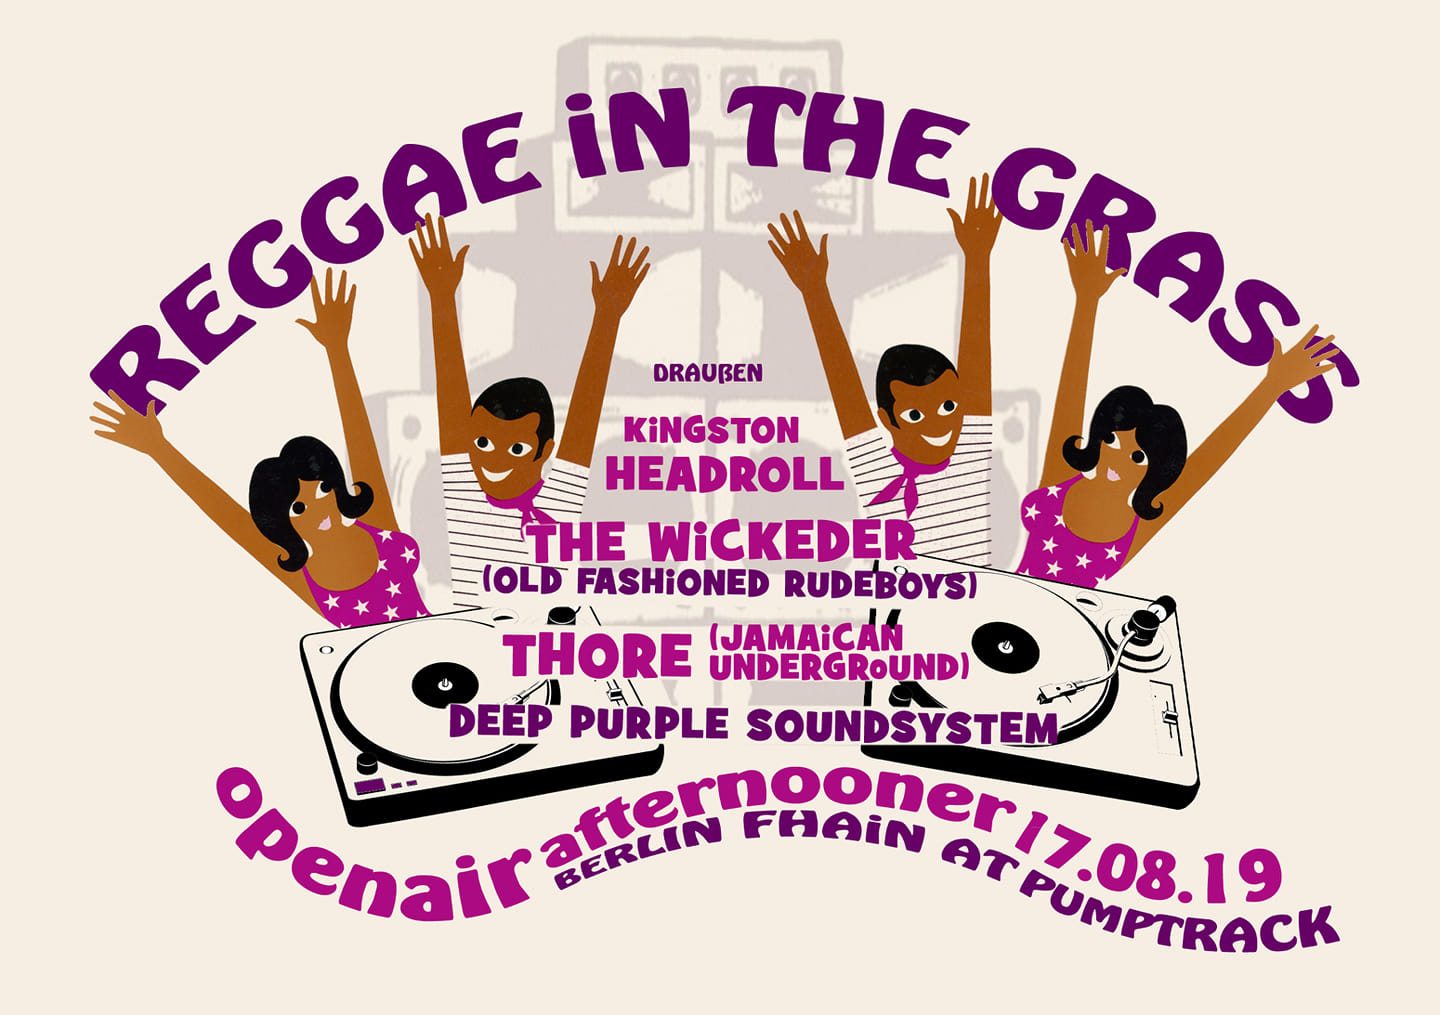 flyer for the event: reggae in the grass (open air)